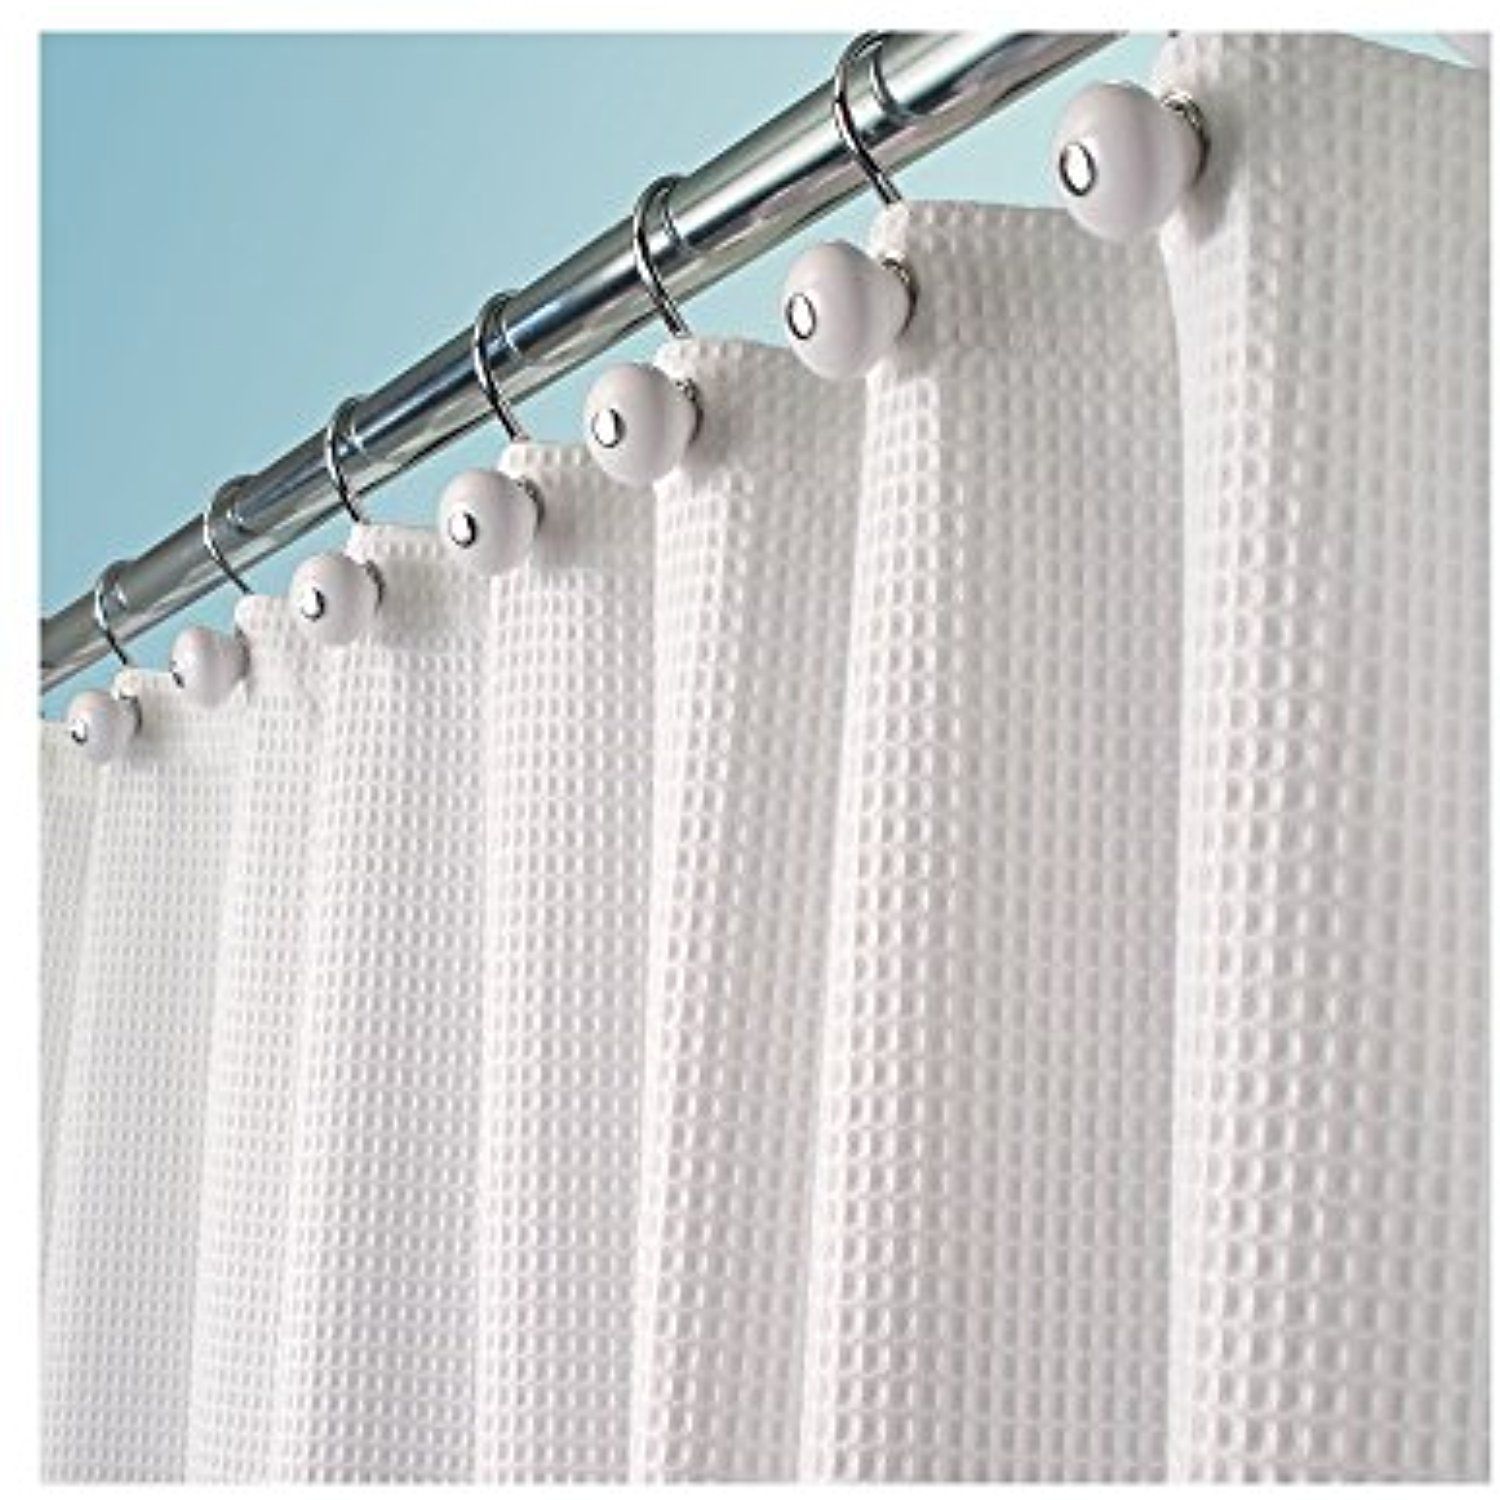 MDesign Hotel Fabric Cotton And Polyester Blend Shower Curtain EUR White Learn